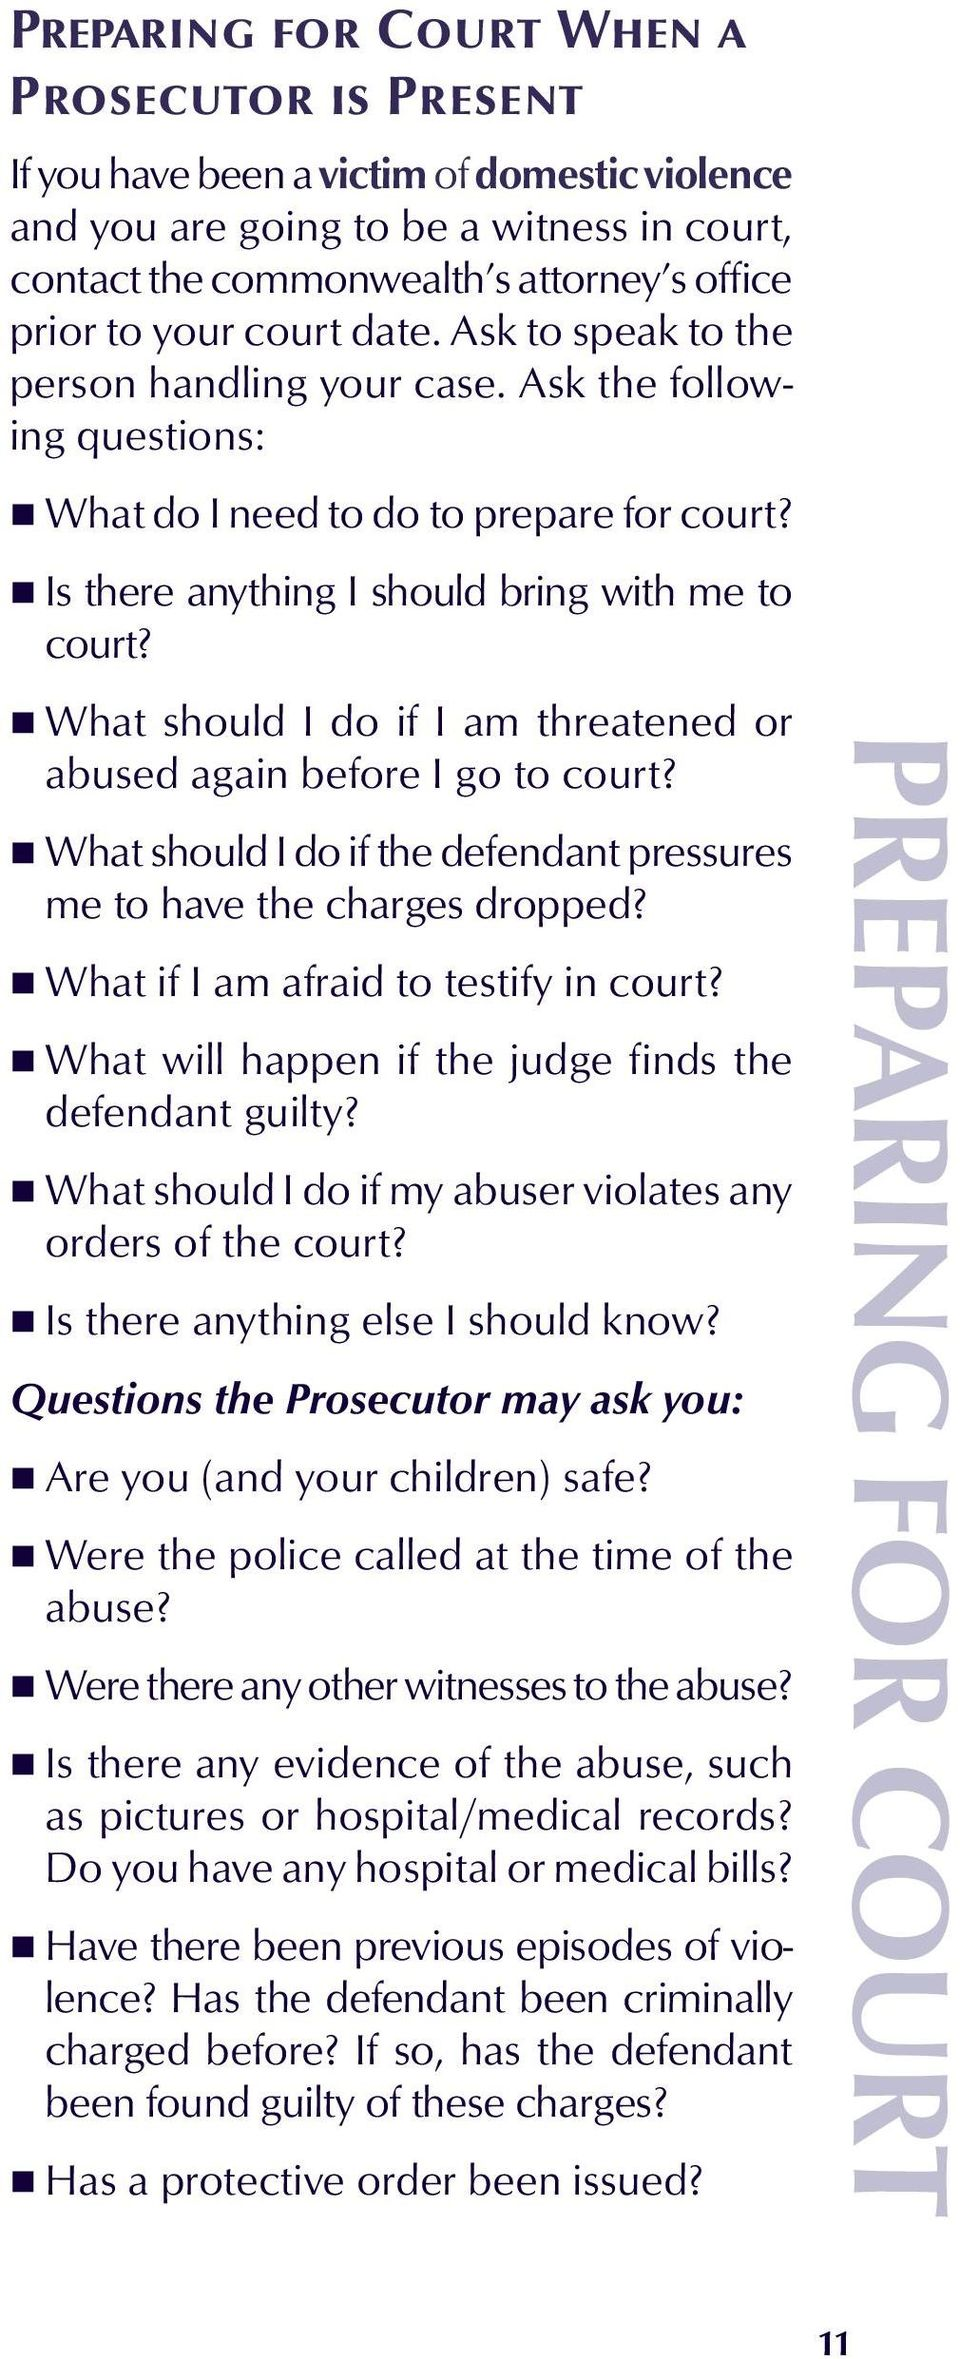 What should I do if I am threatened or abused again before I go to court? What should I do if the defendant pressures me to have the charges dropped? What if I am afraid to testify in court?